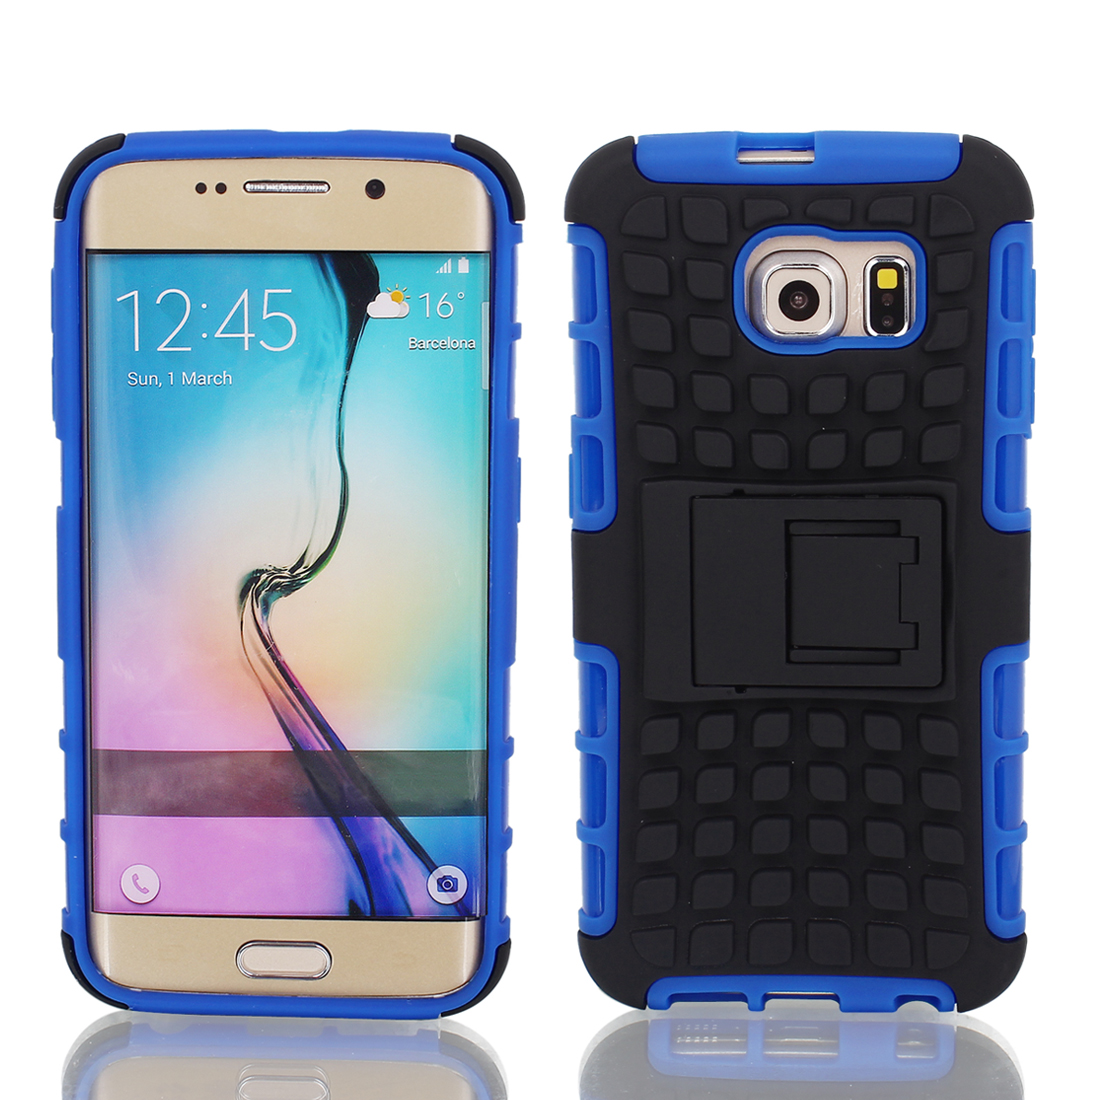 Shockproof Tough Rugged Hard Stand Case Cover Blue Black for G9200 Galaxy S6